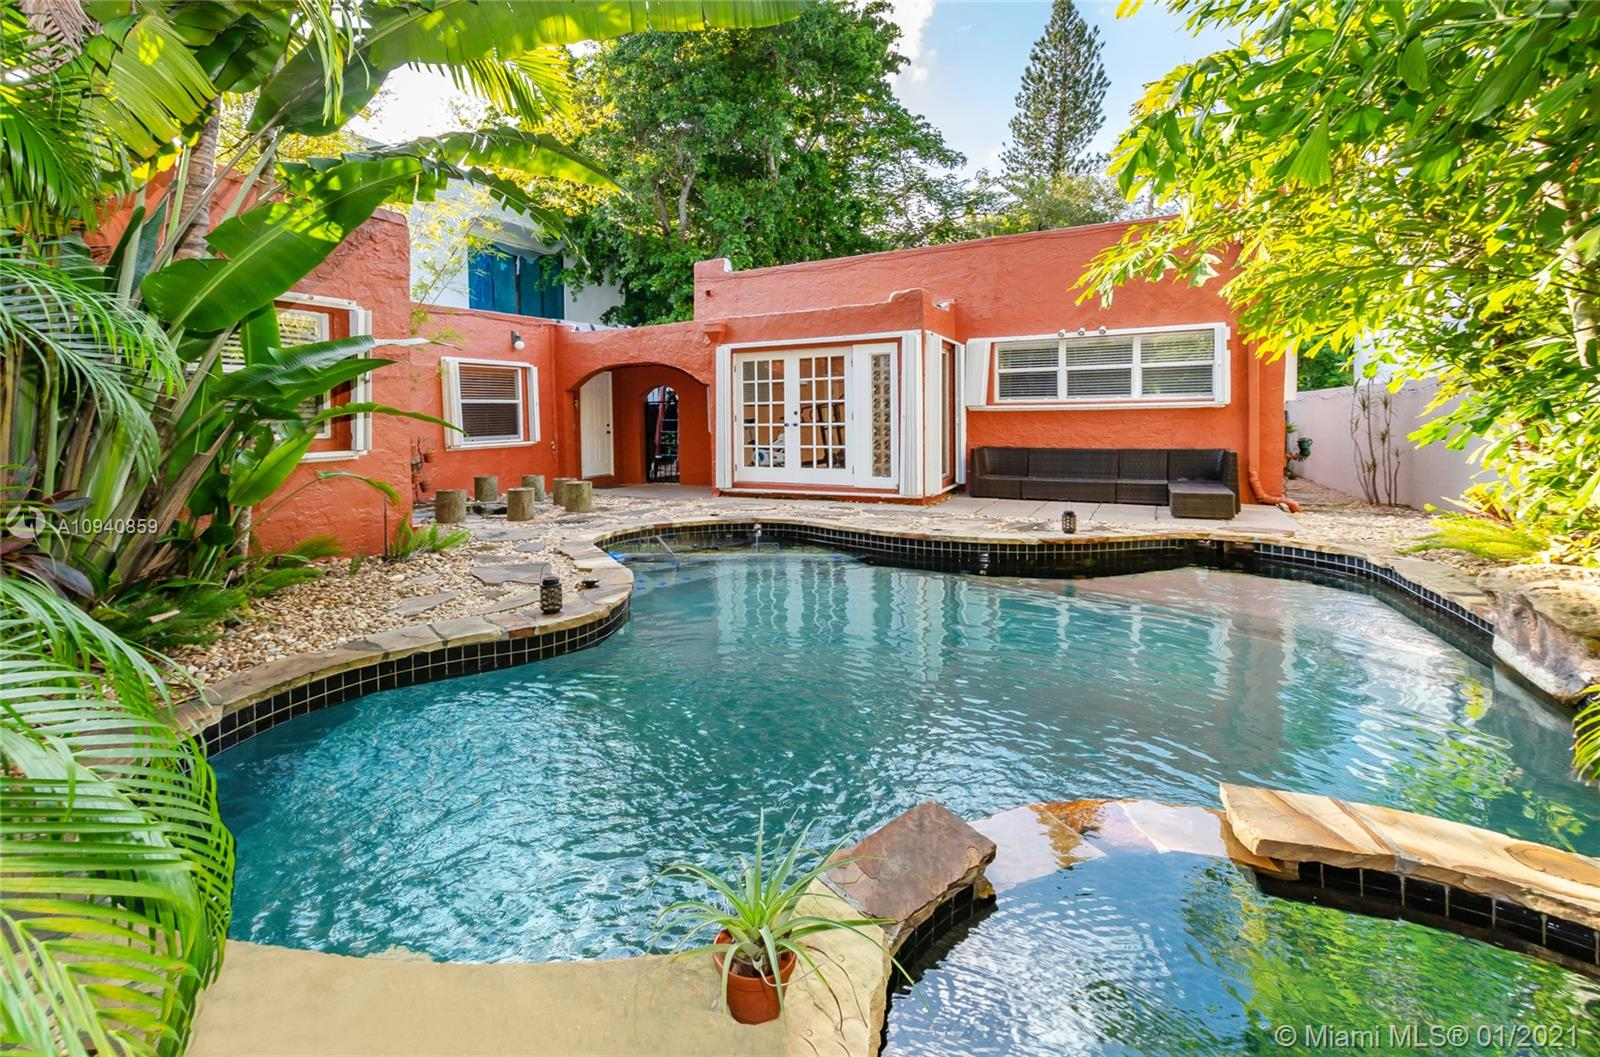 Coconut Grove living in this freshly painted charming Old-Spanish pool home on tree-lined Inagua street in sought after North Grove. The property boasts a main house with 3 bedrooms and 1 bathroom, 1618 SQ FT beautiful hardwood floors and a working fireplace in addition to a separate guest cottage with 2 bedrooms, 1 bath, approx 500 Sq ft office space and  kitchenette.   Flexible for relaxing or entertaining, this home also offers an ultra-private tropical backyard oasis with lagoon-style pool, rock garden, generous entertainment area, lush green canopy, custom fire pit and playground area. Moments from Monty's, Starbucks, incredible parks, Schools, Biscayne Bay, sailing clubs, restaurants, and everything Coconut Grove has to offer. Fabulous price and opportunity-NO FLOOD ZONE.